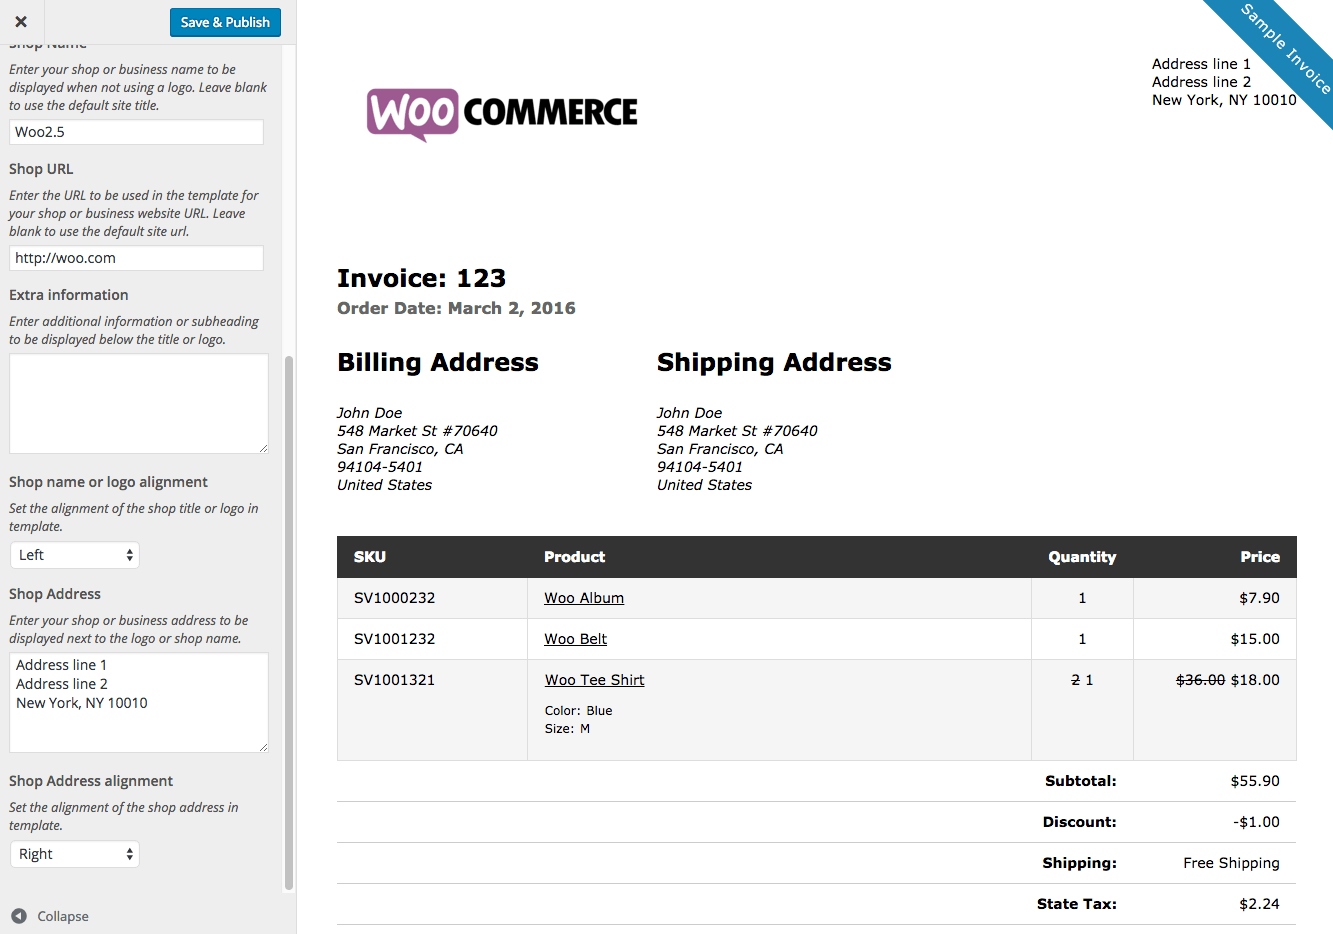 Howcanigettallerus  Unique Woocommerce Print Invoices Amp Packing Lists  Woocommerce Docs With Likable Woocommerce Print Invoices  Packing Lists Customizer With Captivating Af Hand Receipt Also Definition Receipt In Addition Jet Blue Receipt And Orlando Taxi Receipt As Well As Wageworks Ez Receipts App Additionally Dollar Rental Car Receipt Online From Docswoocommercecom With Howcanigettallerus  Likable Woocommerce Print Invoices Amp Packing Lists  Woocommerce Docs With Captivating Woocommerce Print Invoices  Packing Lists Customizer And Unique Af Hand Receipt Also Definition Receipt In Addition Jet Blue Receipt From Docswoocommercecom